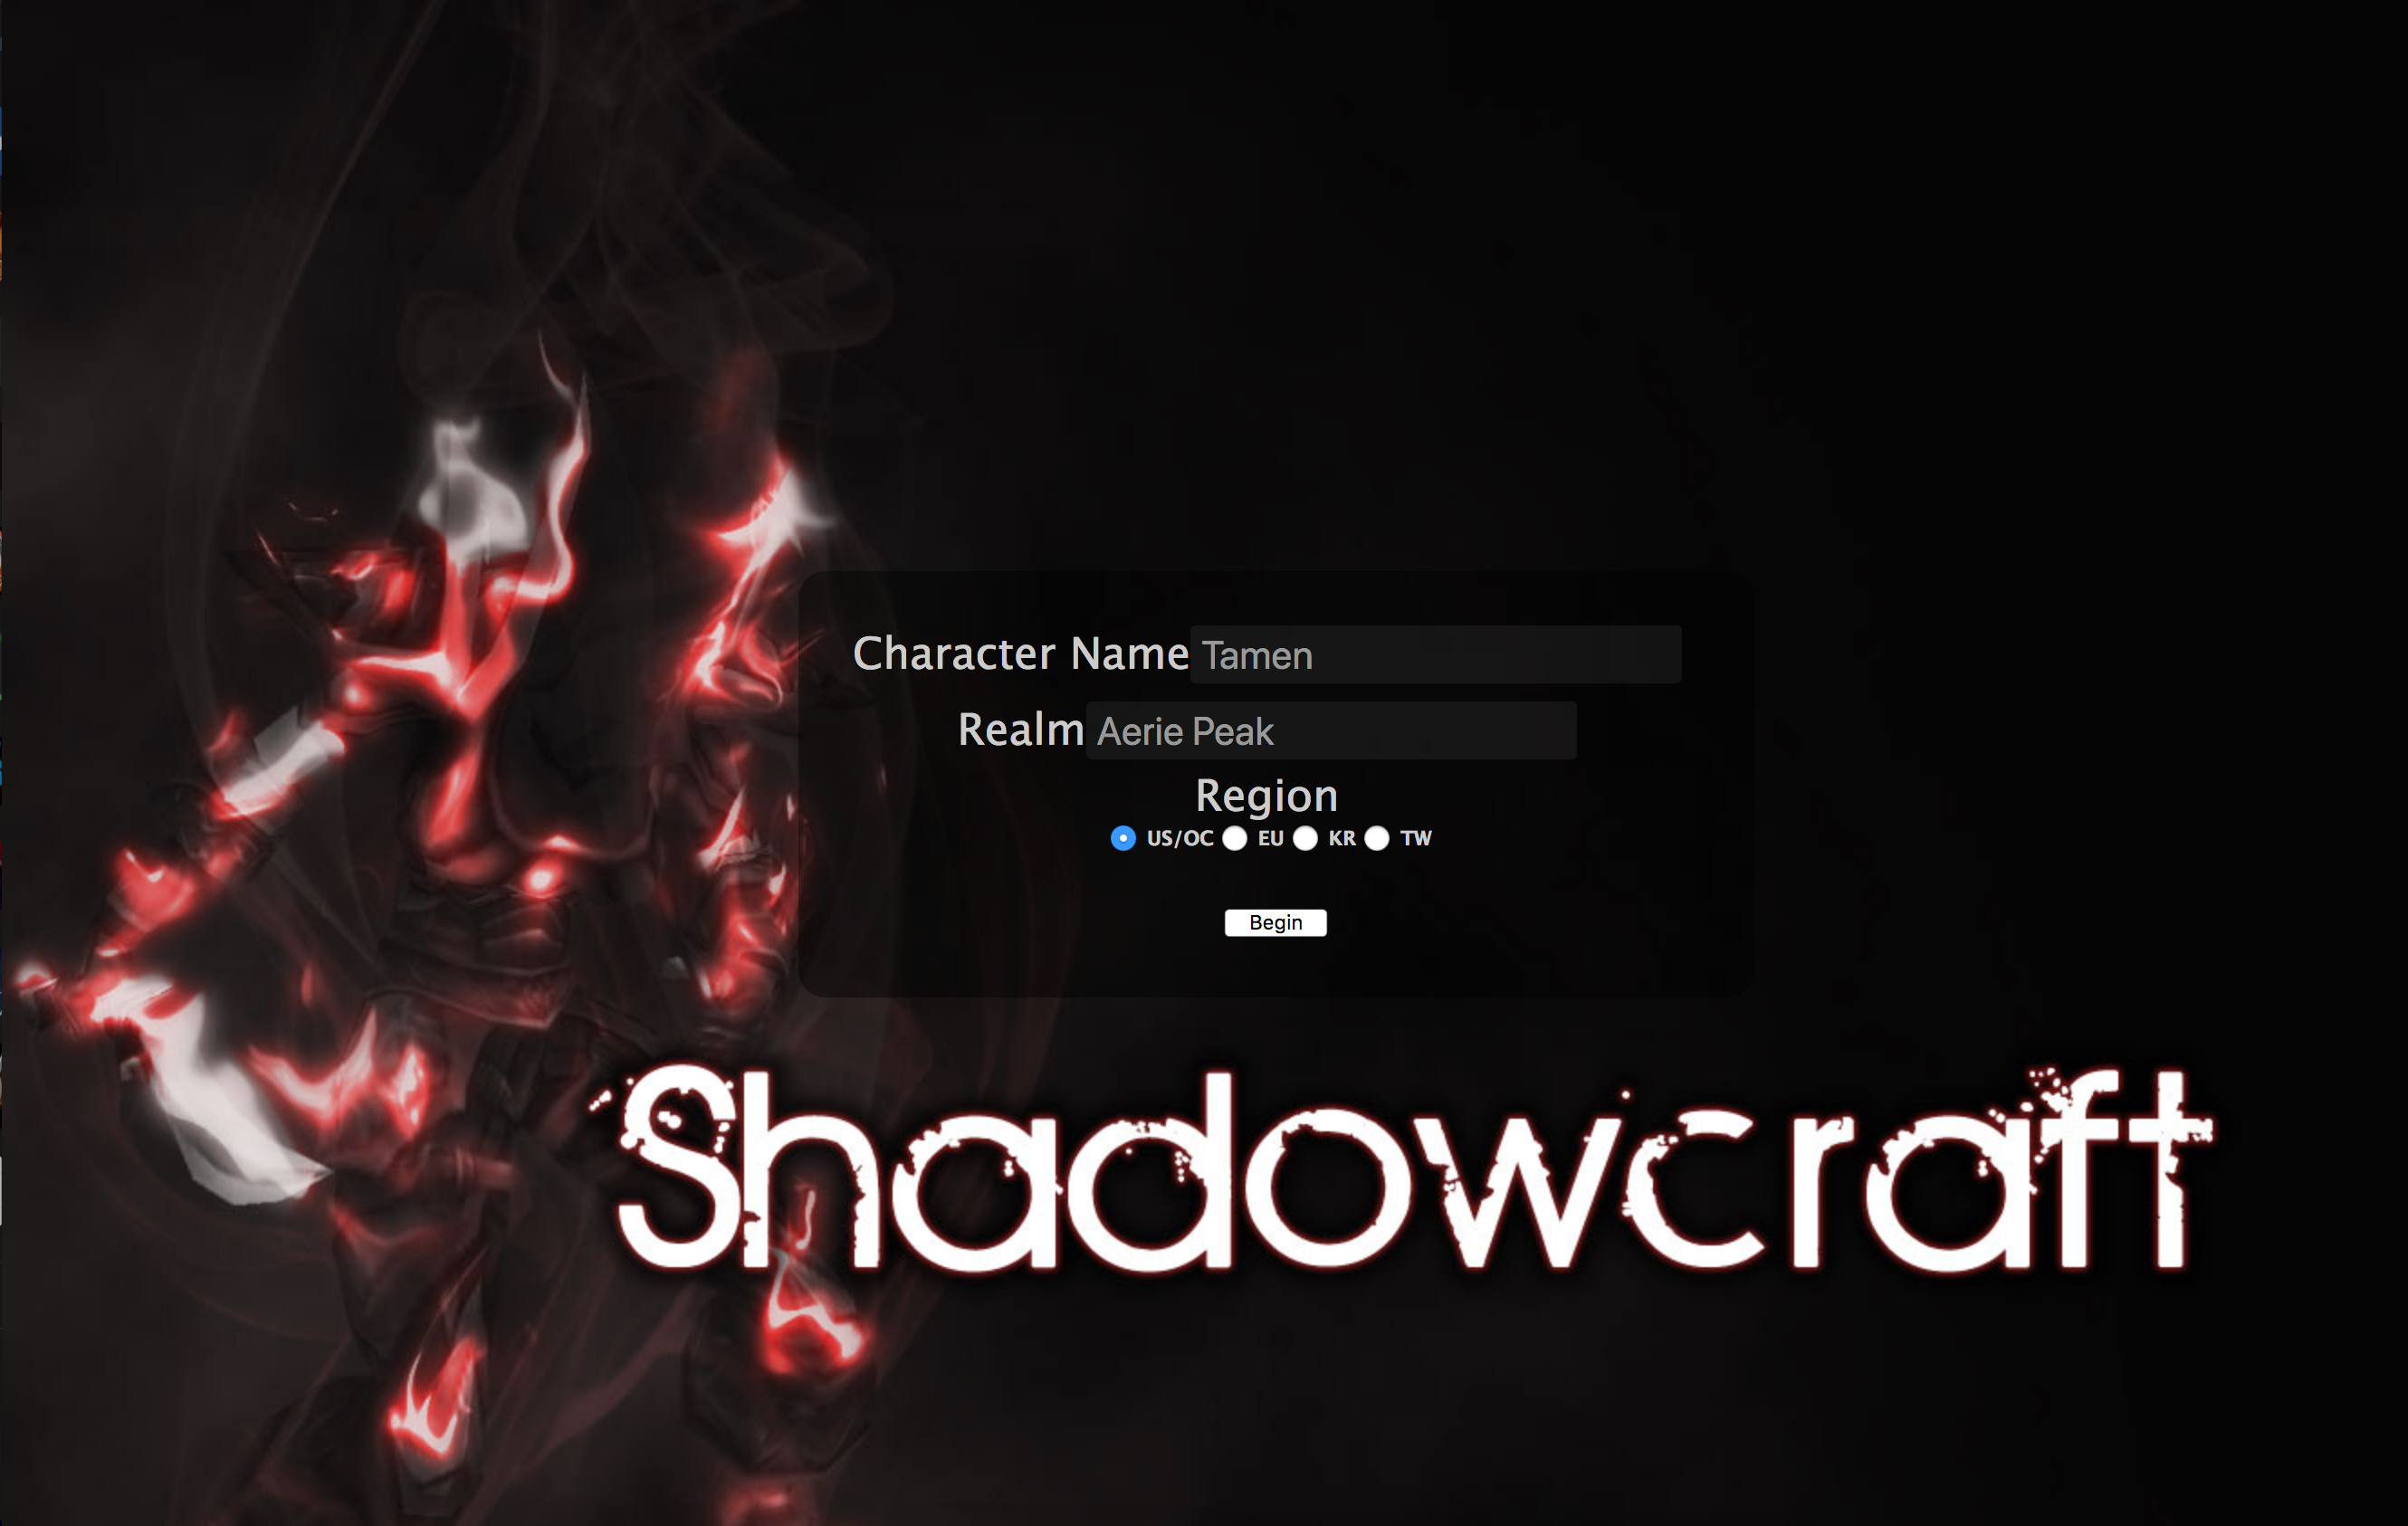 The ShadowCraft home page during the Legion expansion